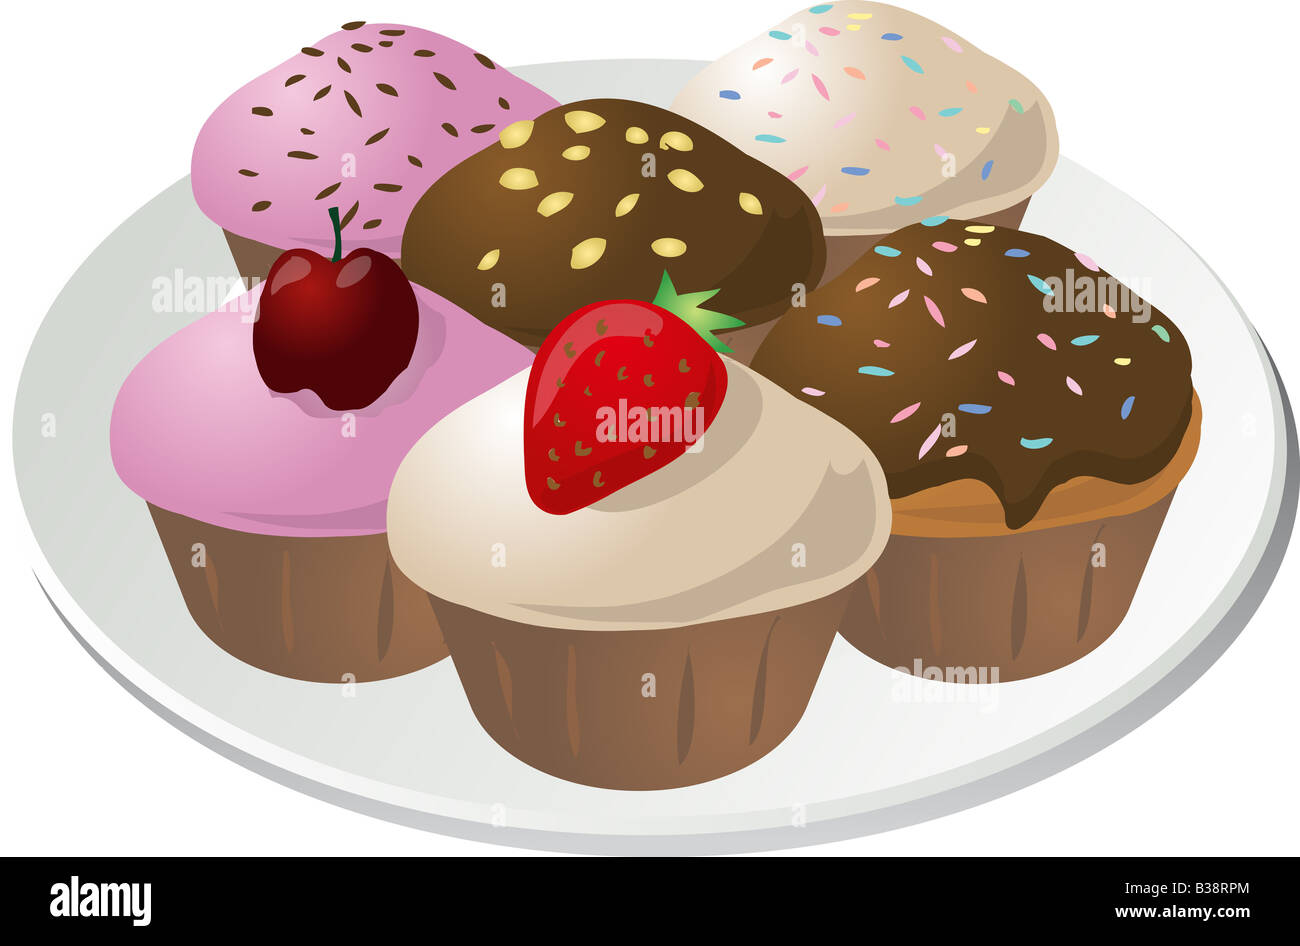 Various cupcakes arranged on a plate isometric illustration - Stock Image